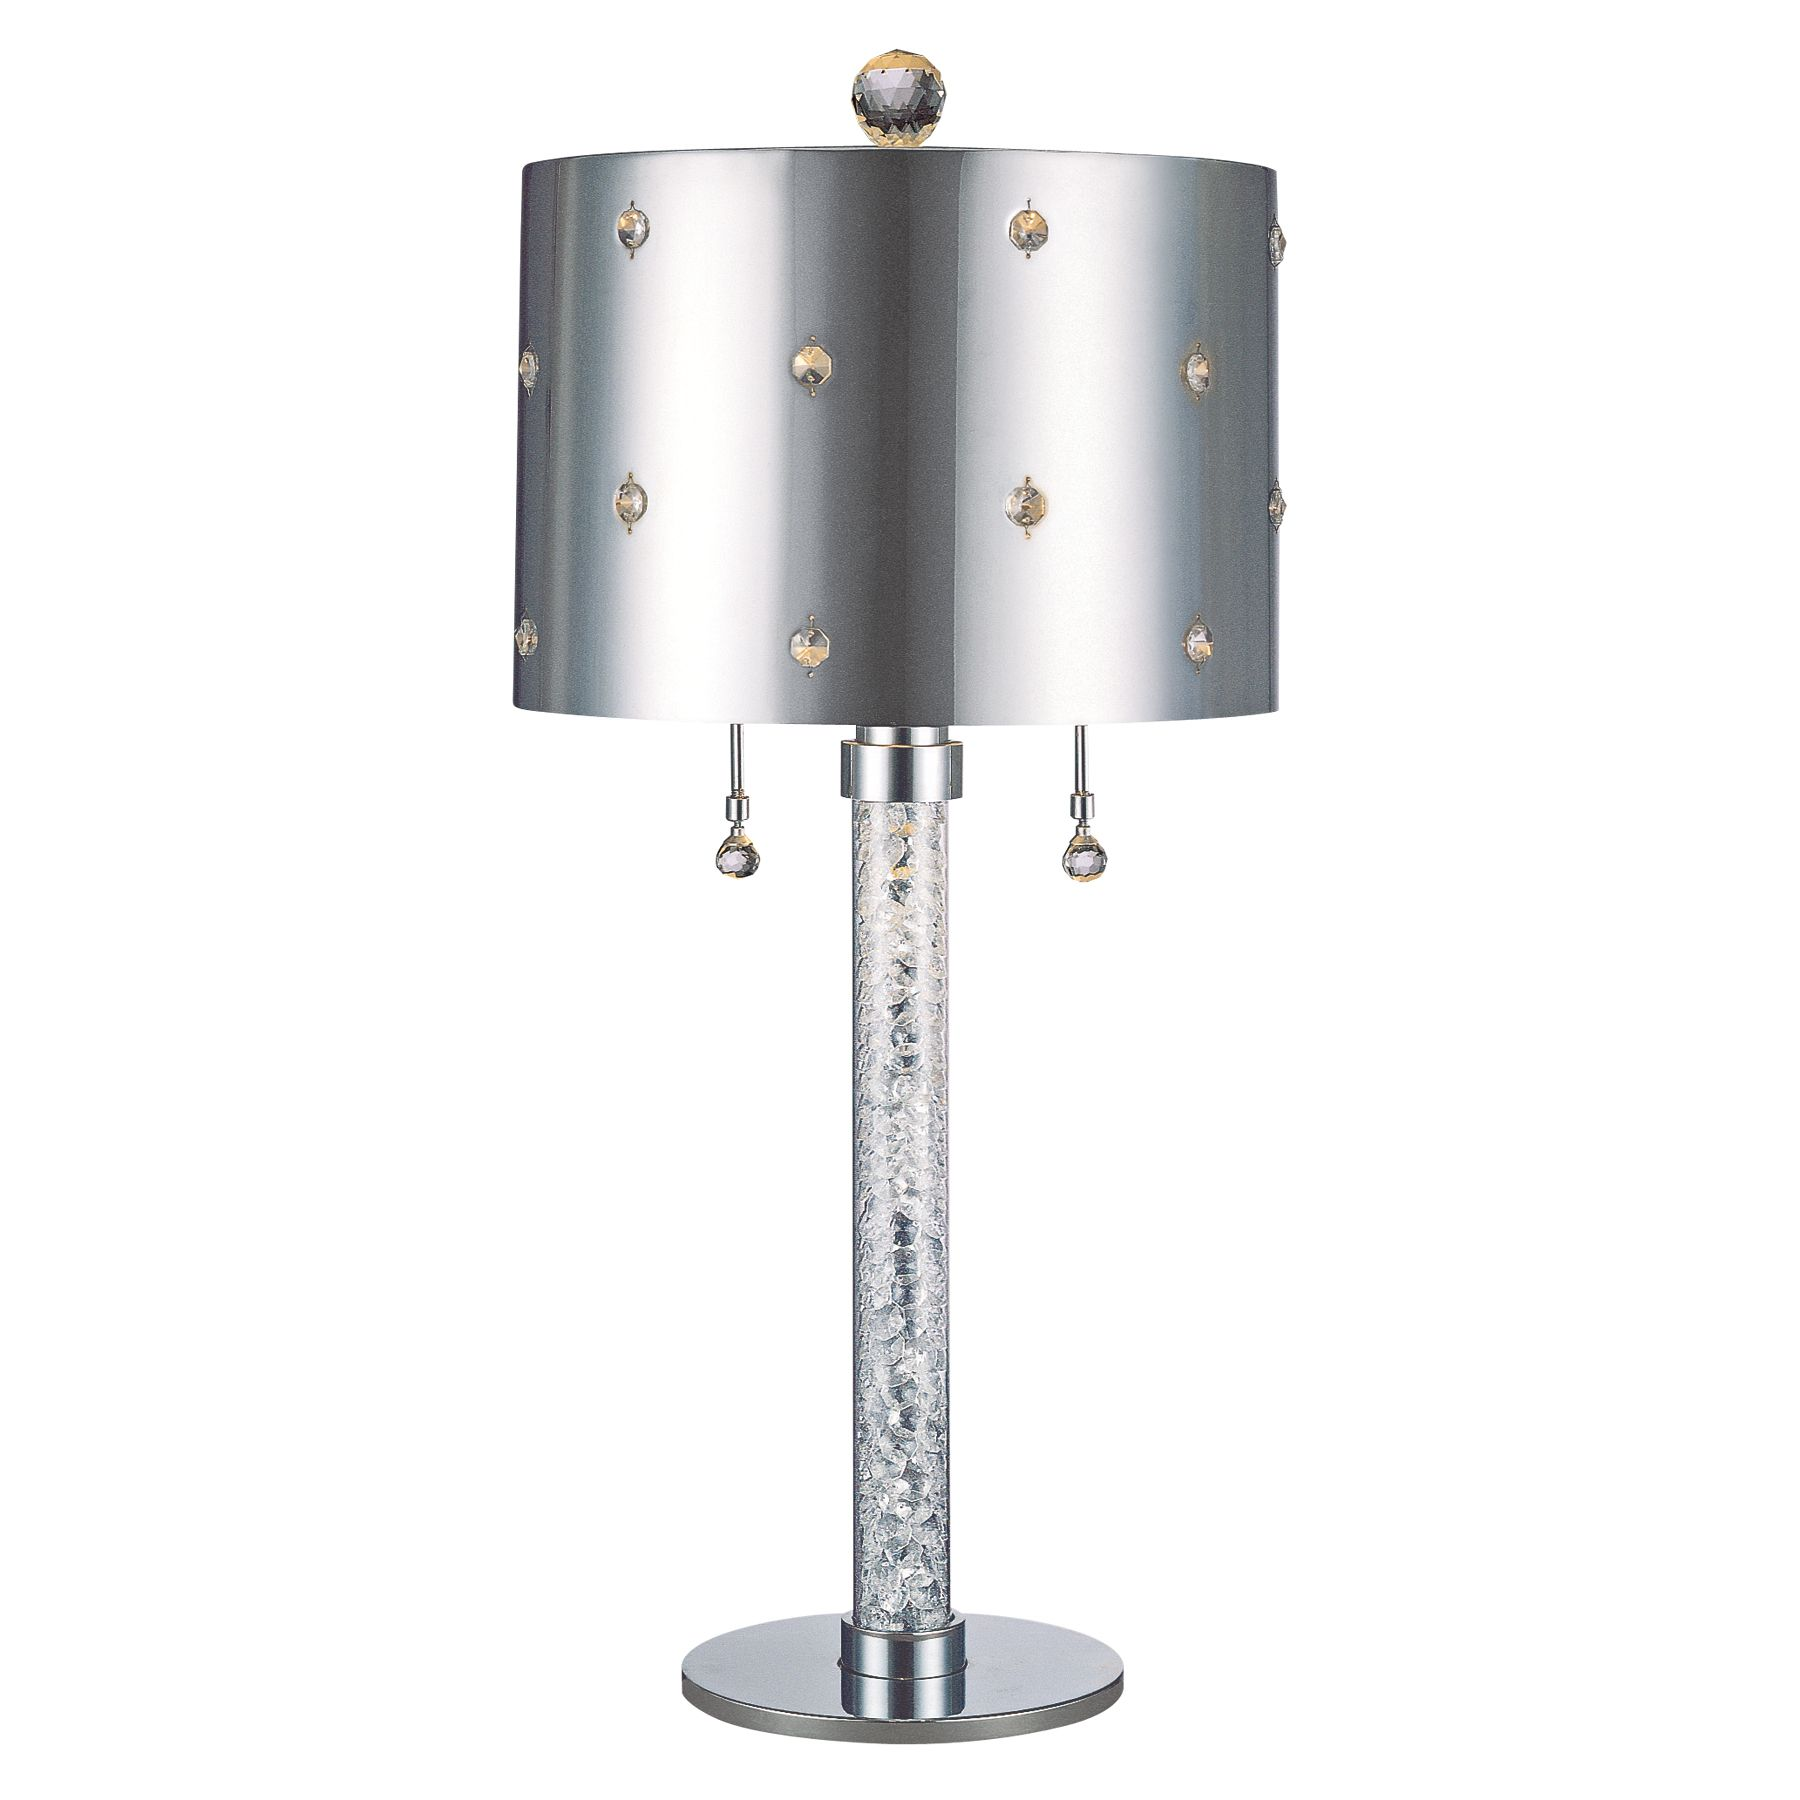 Bling Bling Table Lamp By George Kovacs P028 077 Table Lamp